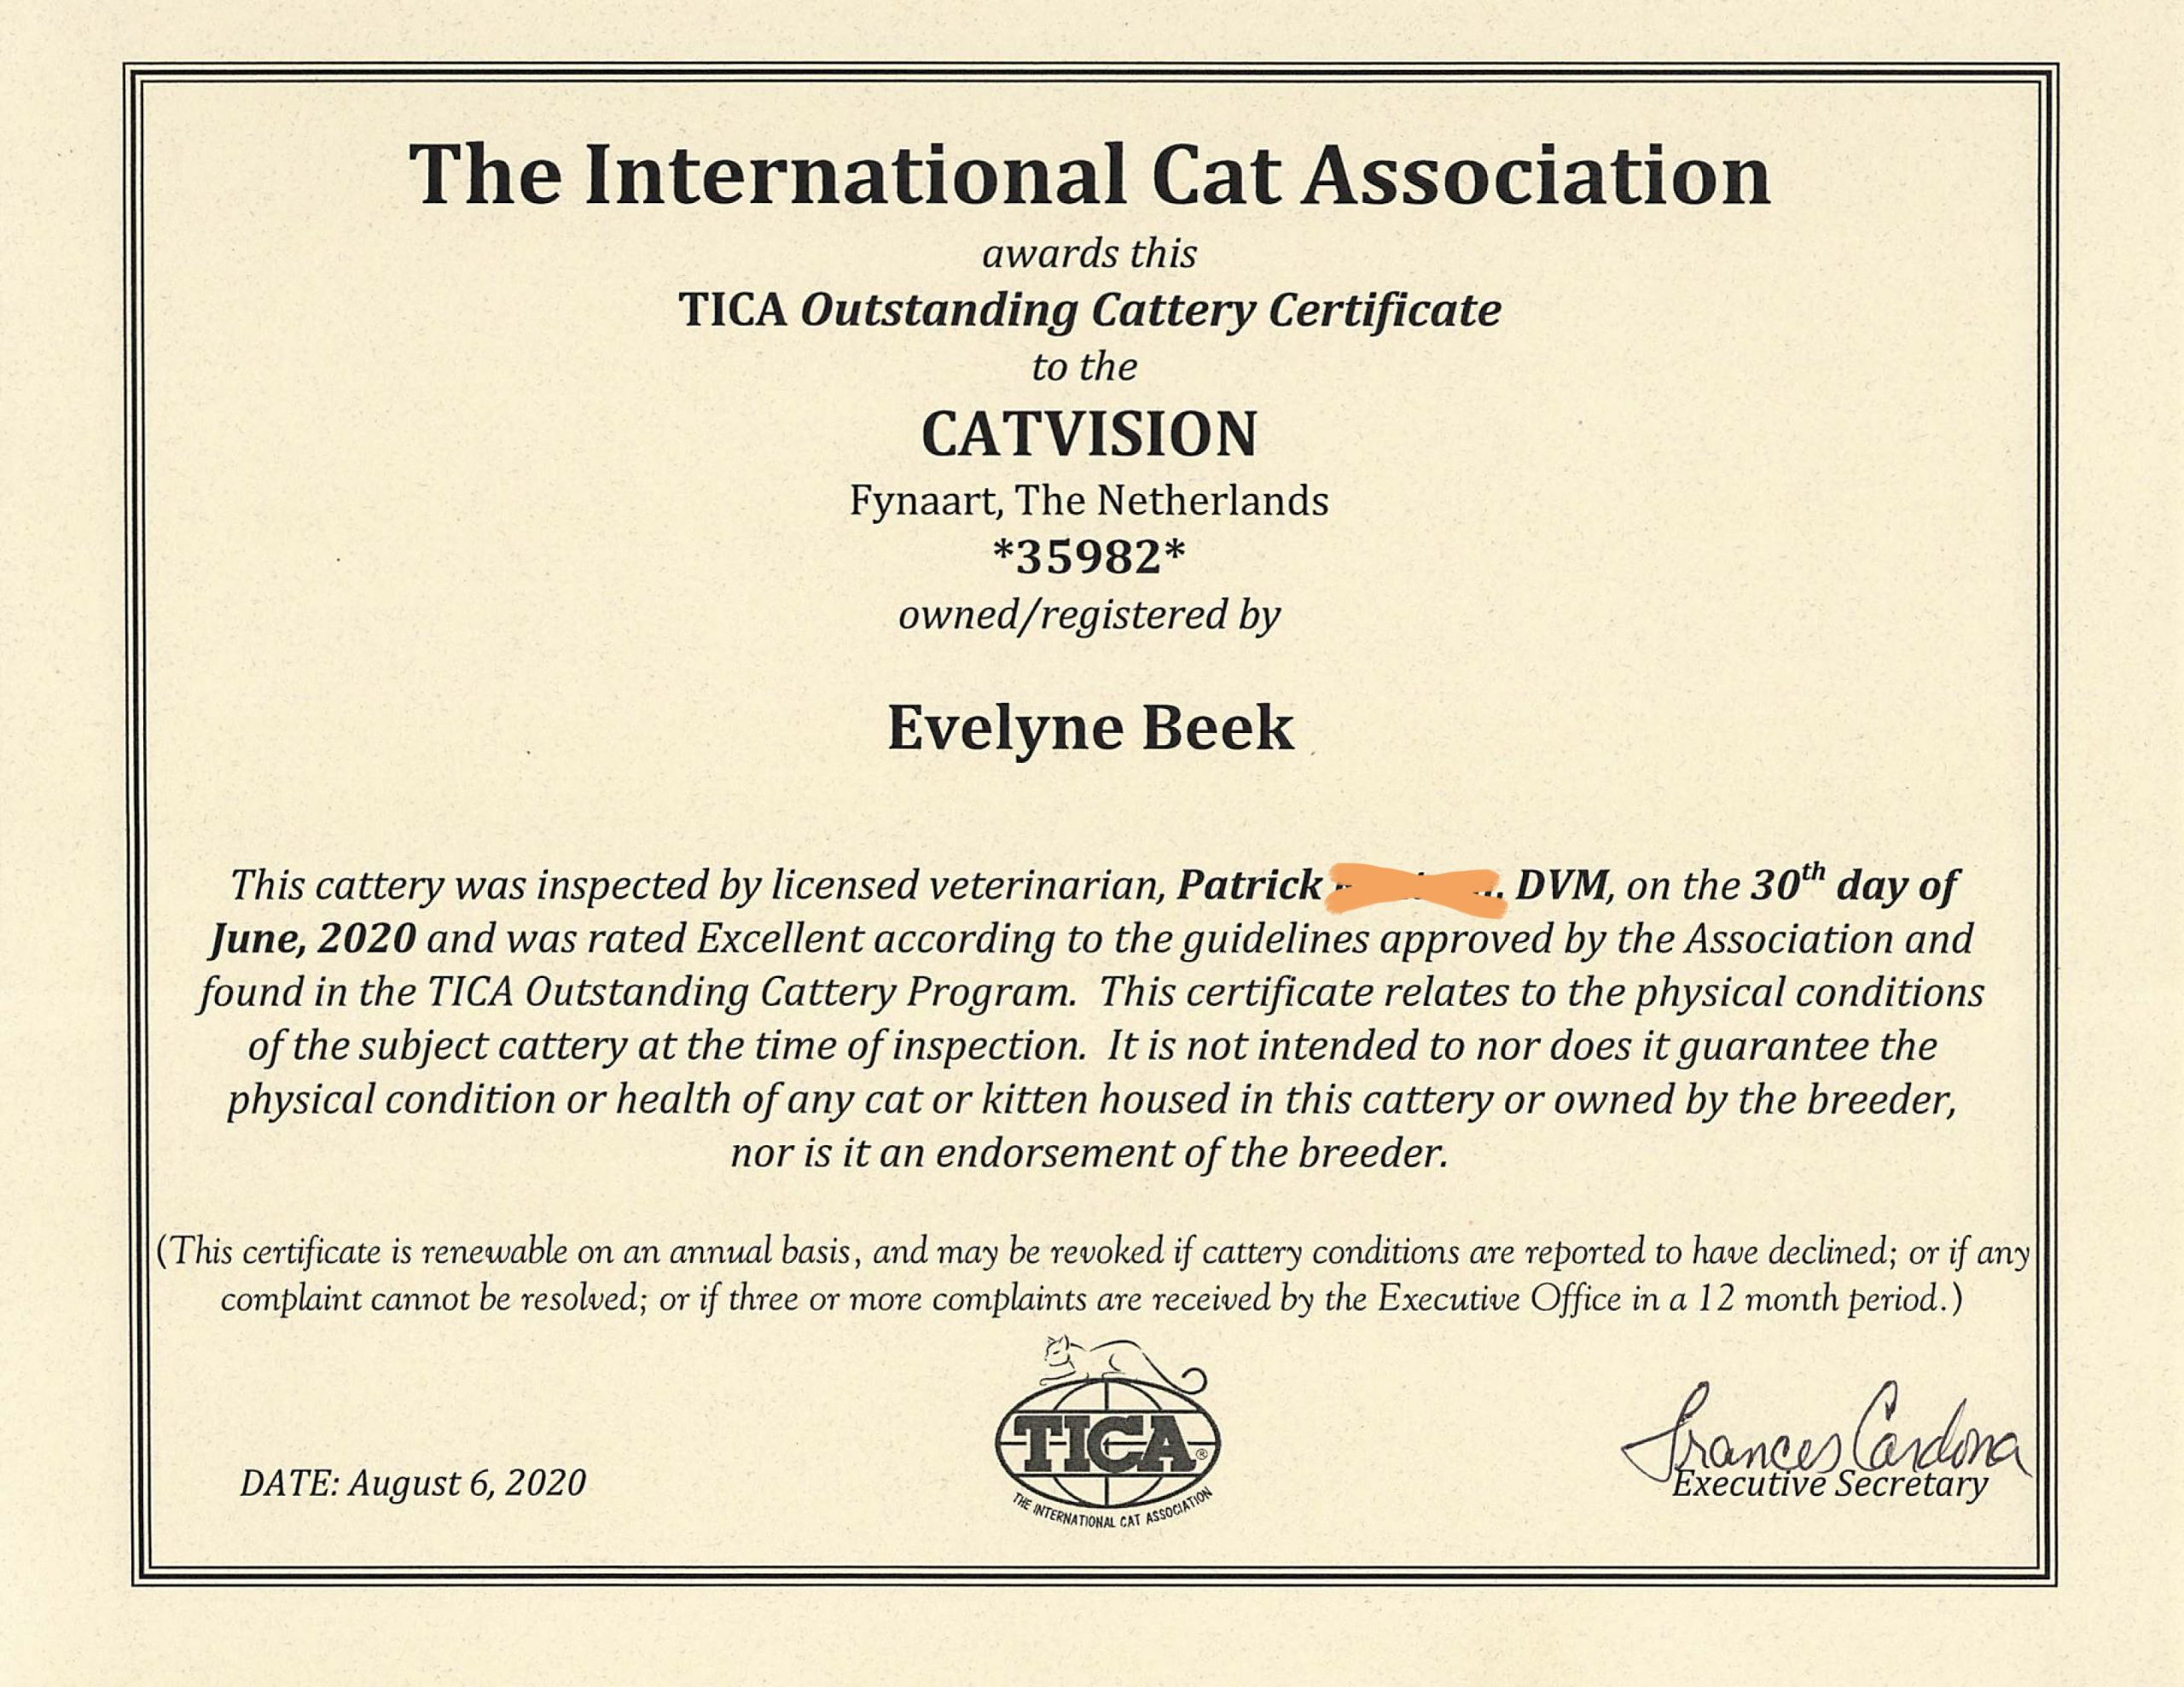 Outstanding Cattery Certificate CatVision